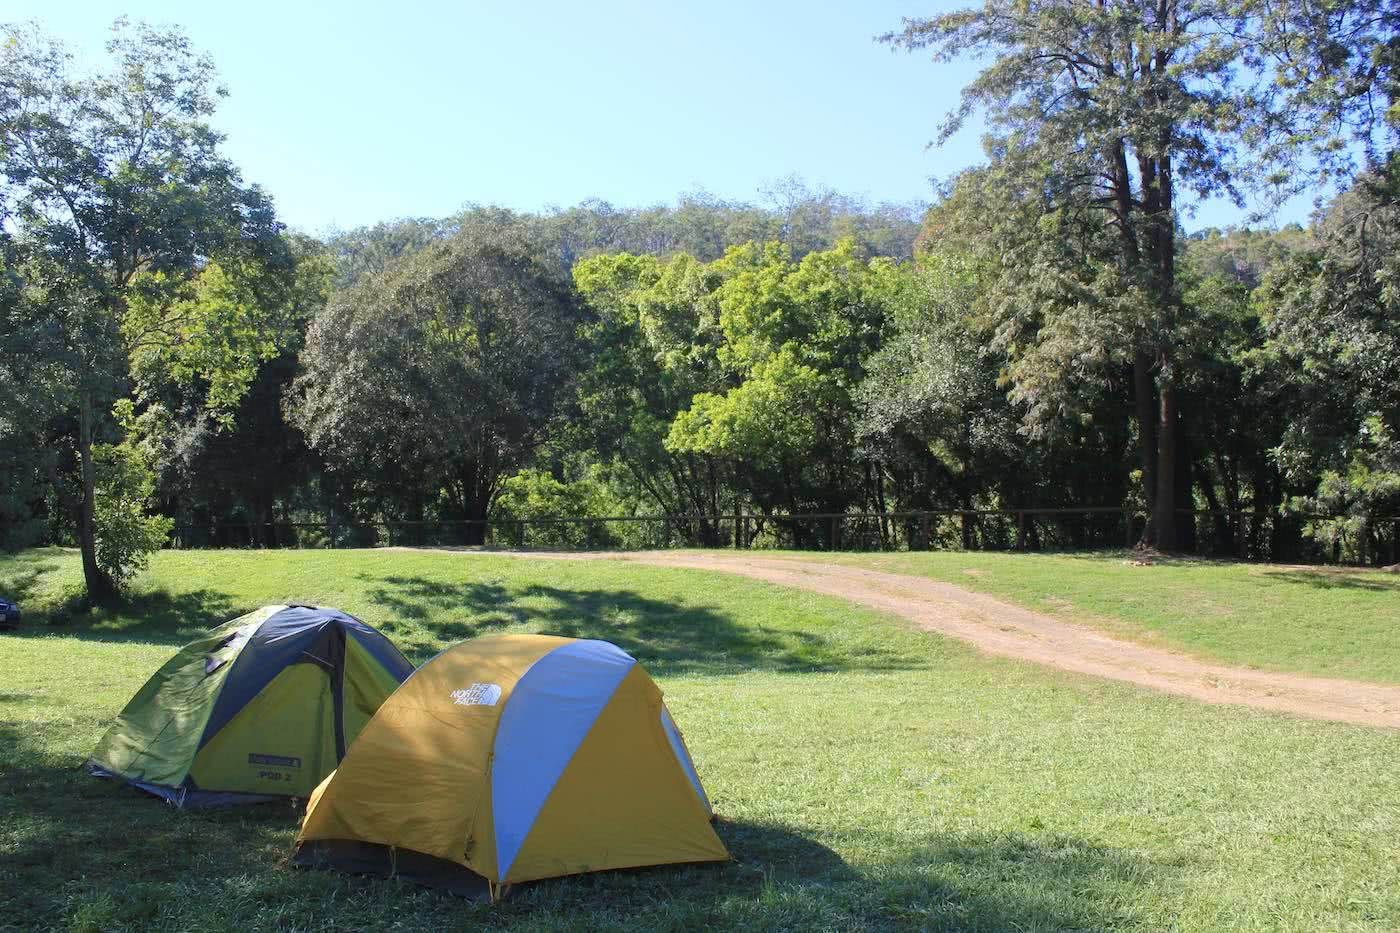 9 Awesome Dog Friendly Campsites Near Brisbane by Saphira Schroers, Glastonbury Creek Campground, tents